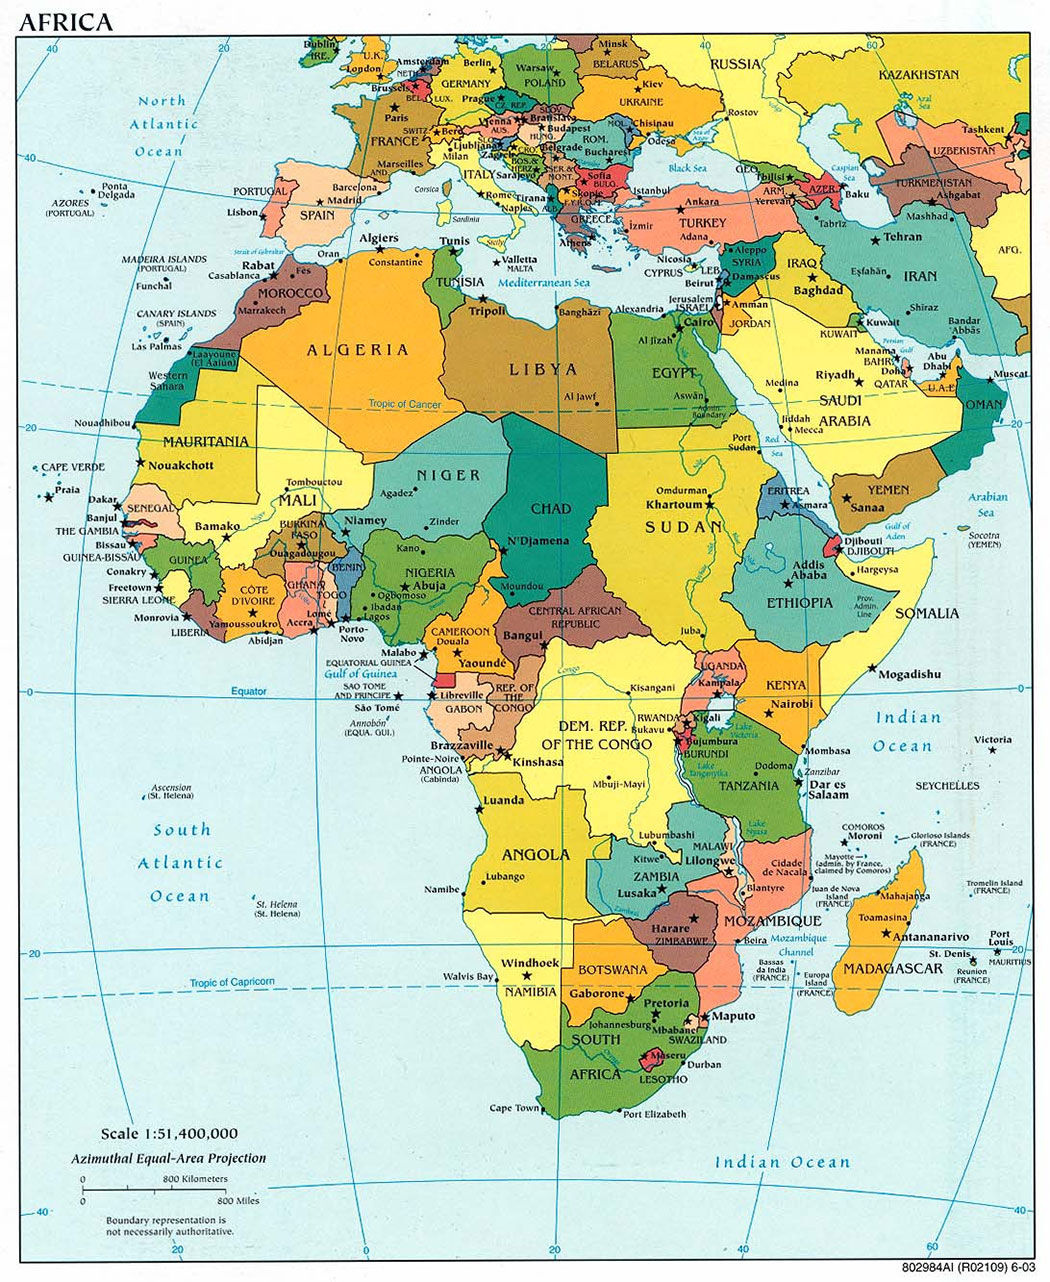 Map Of Europe And Middle East Countries.Map Middle East Europe 28 Images World History Maps From Kappa